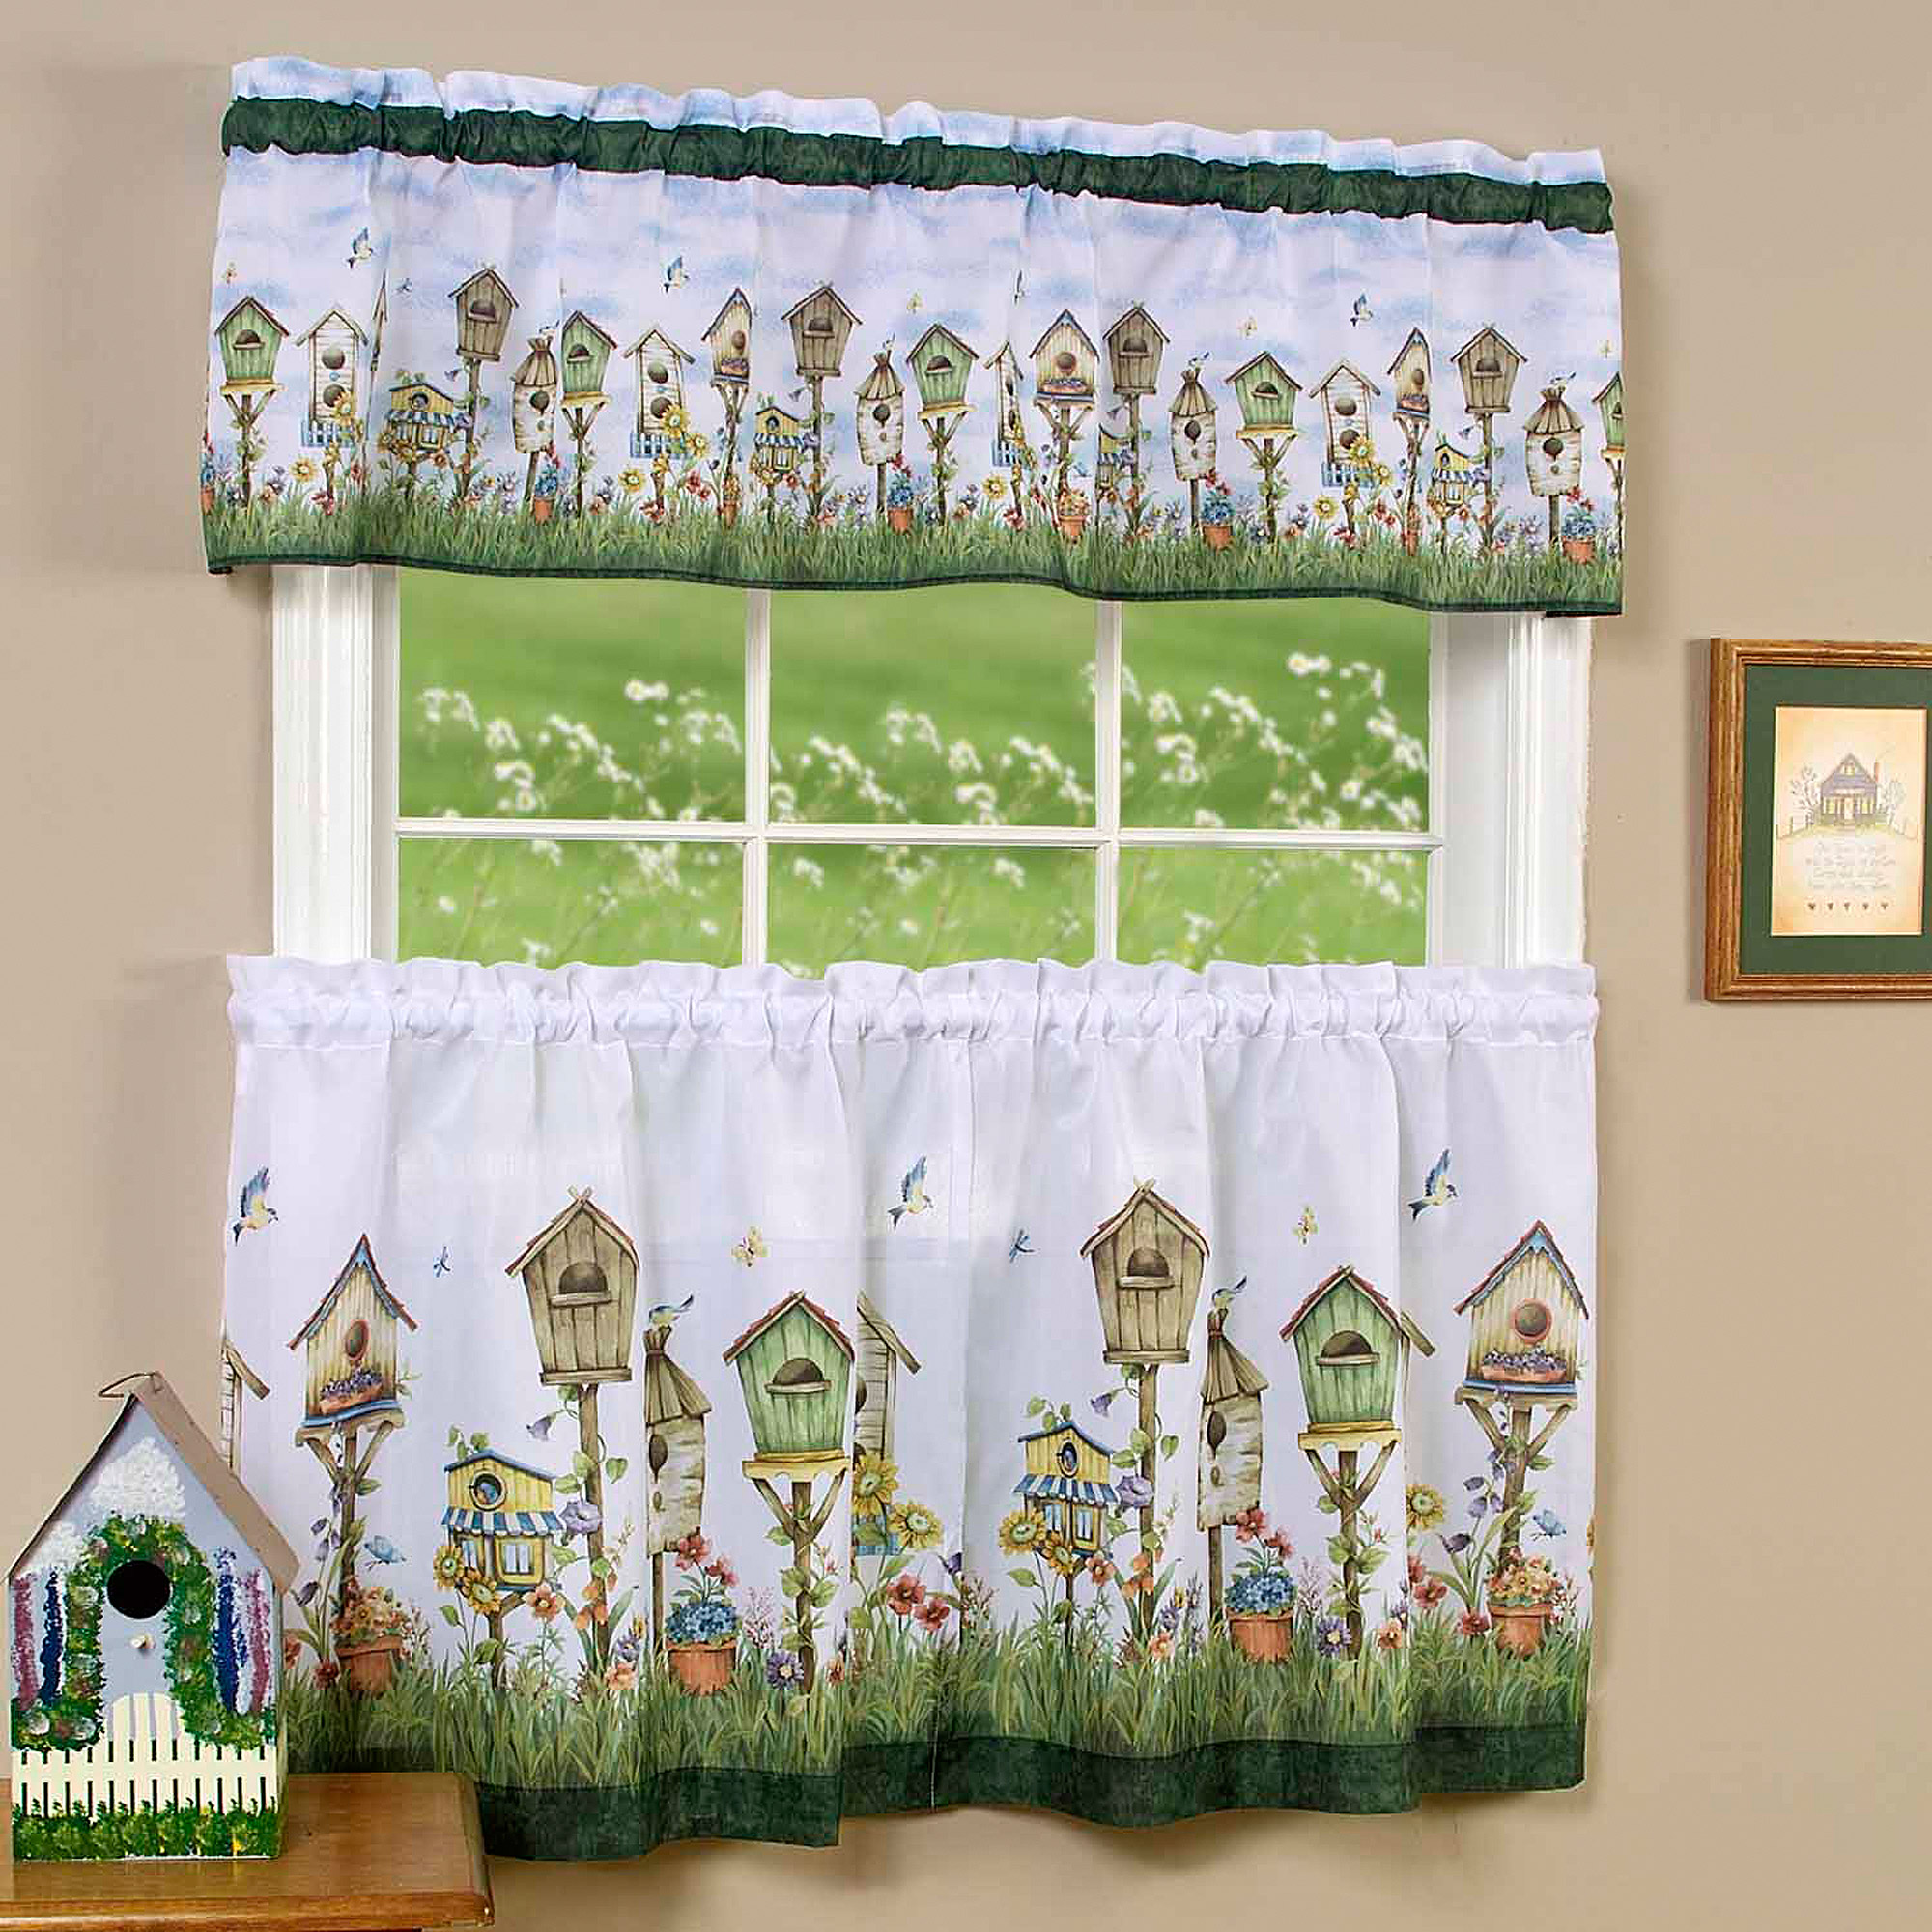 Kitchen Curtain and Valence Set, Home Sweet Home